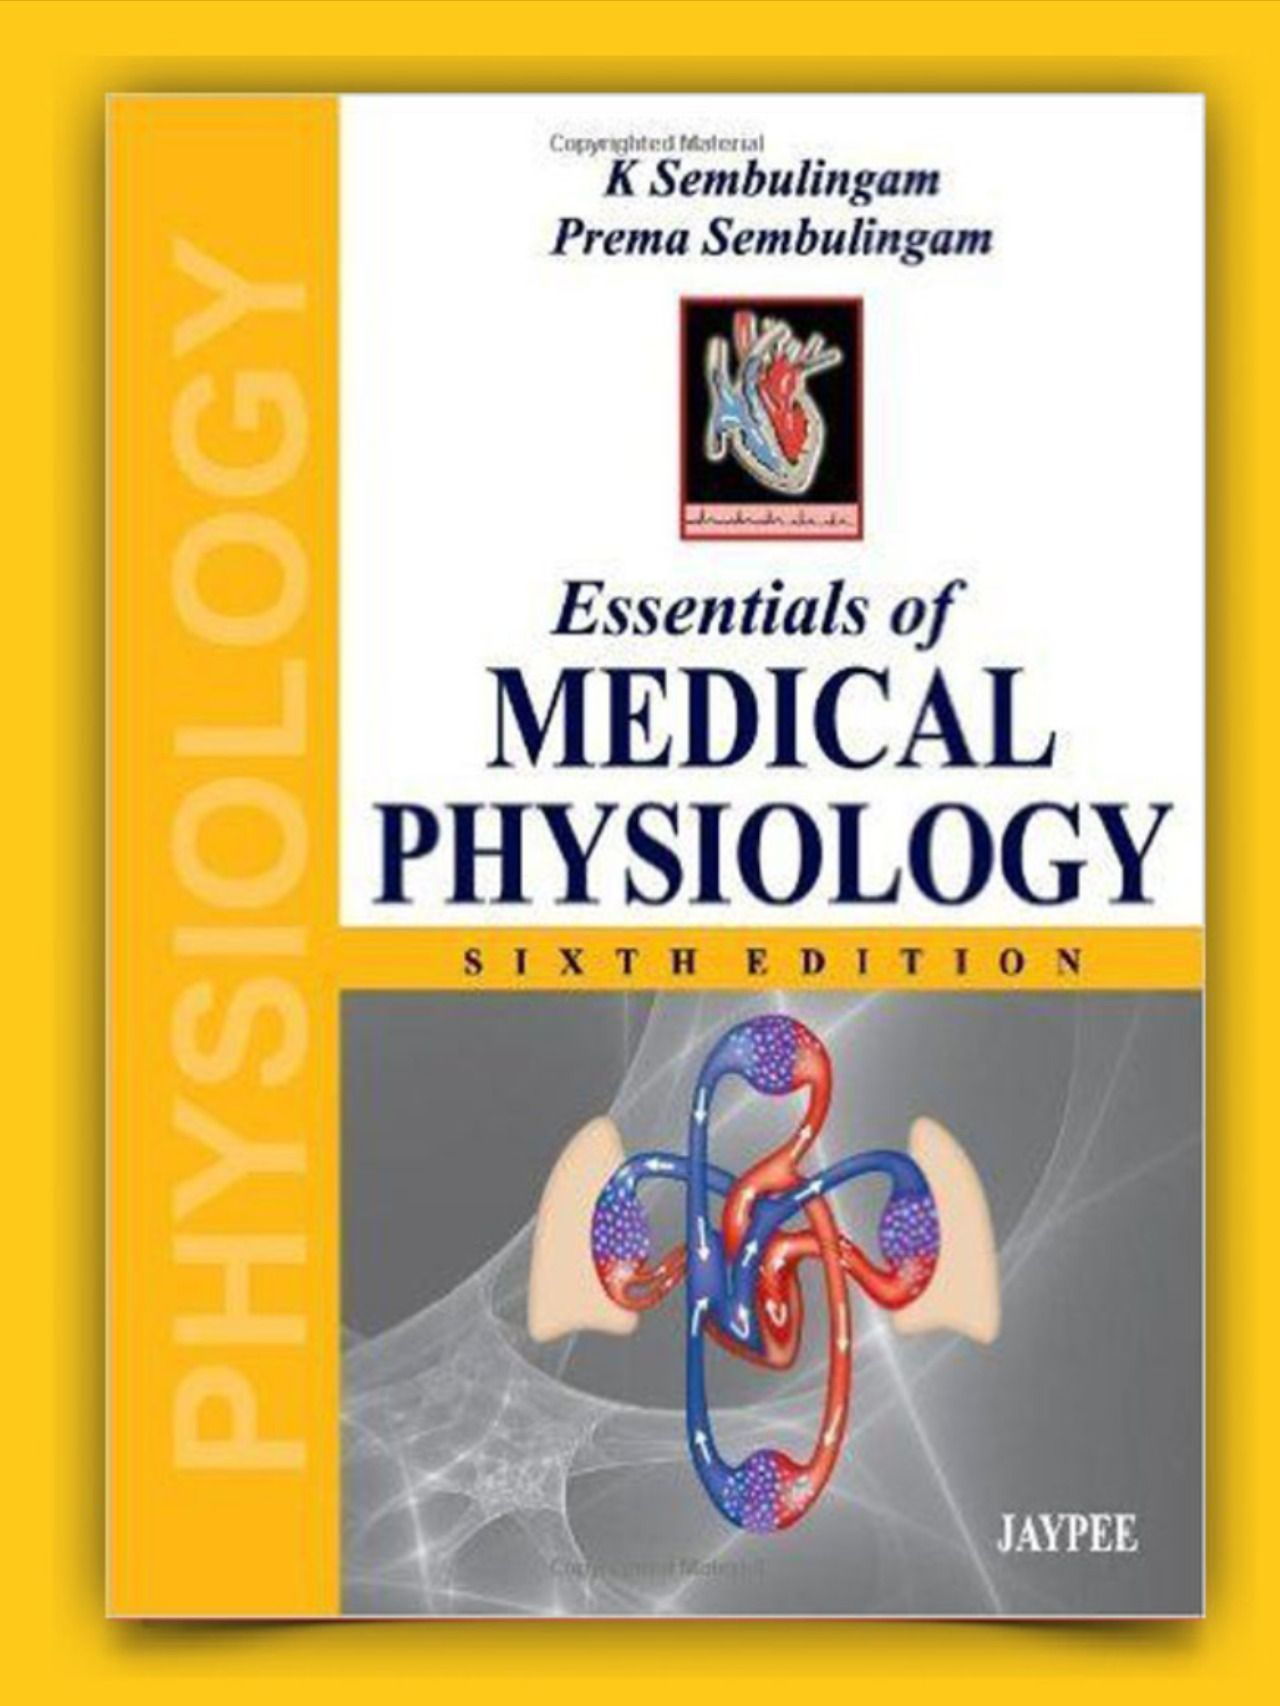 Anatomy And Physiology Book Pdf In English